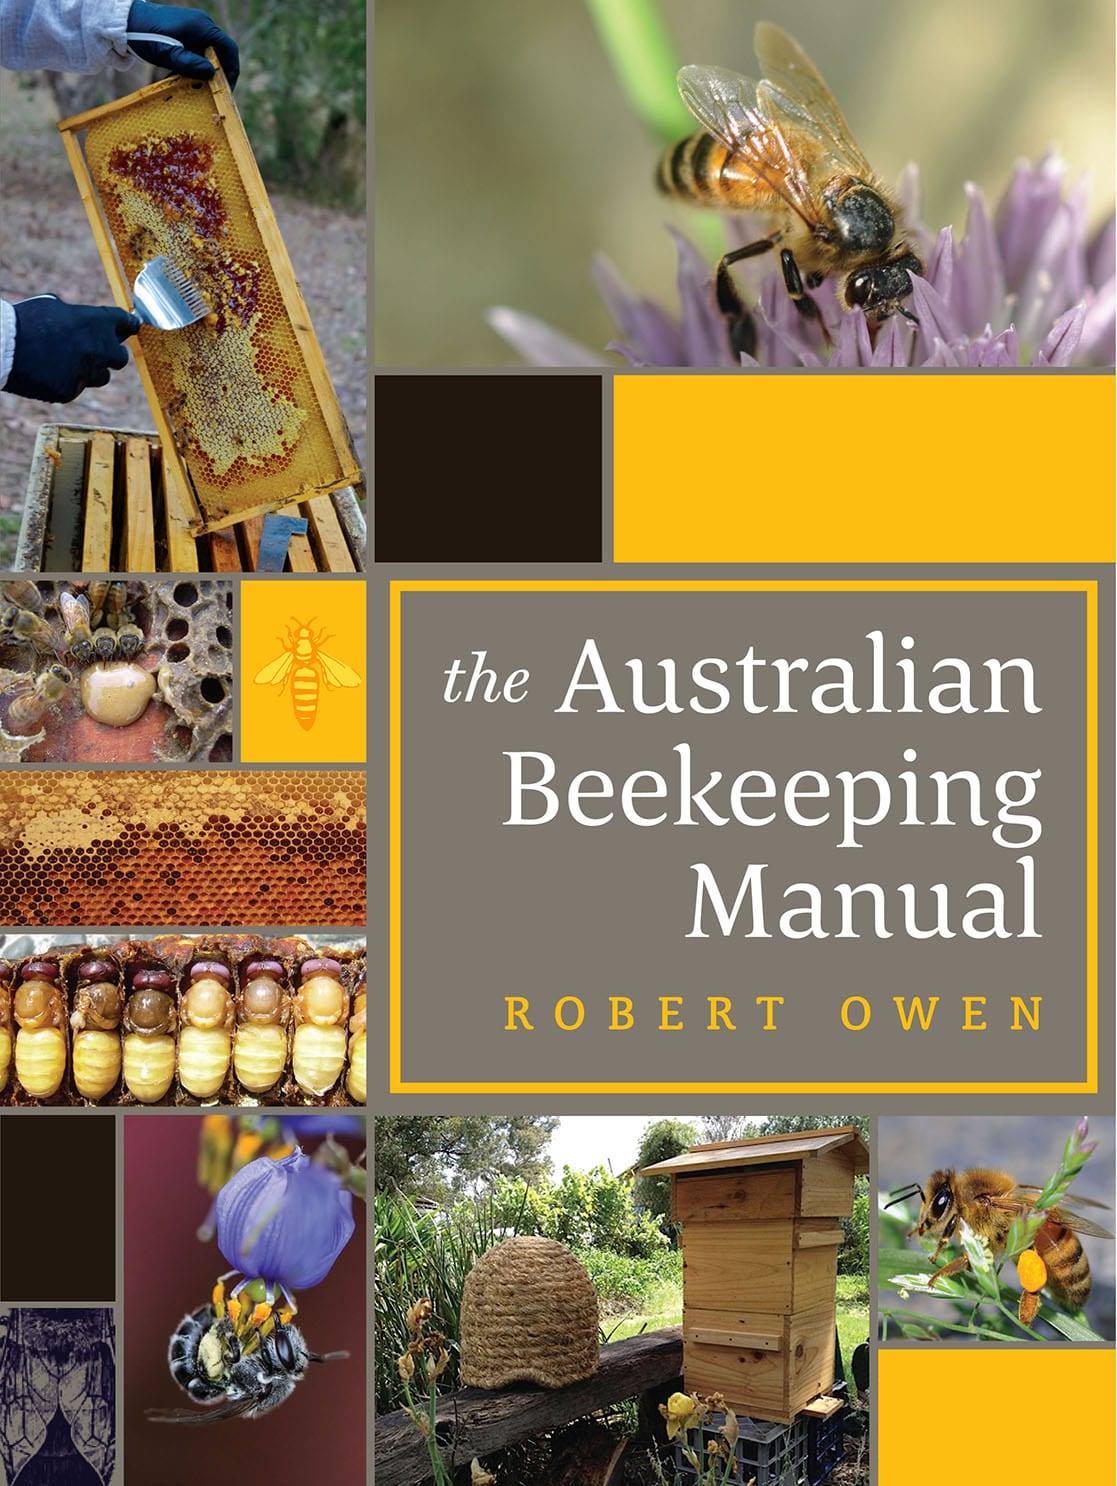 The Australian Beekeeping Manual